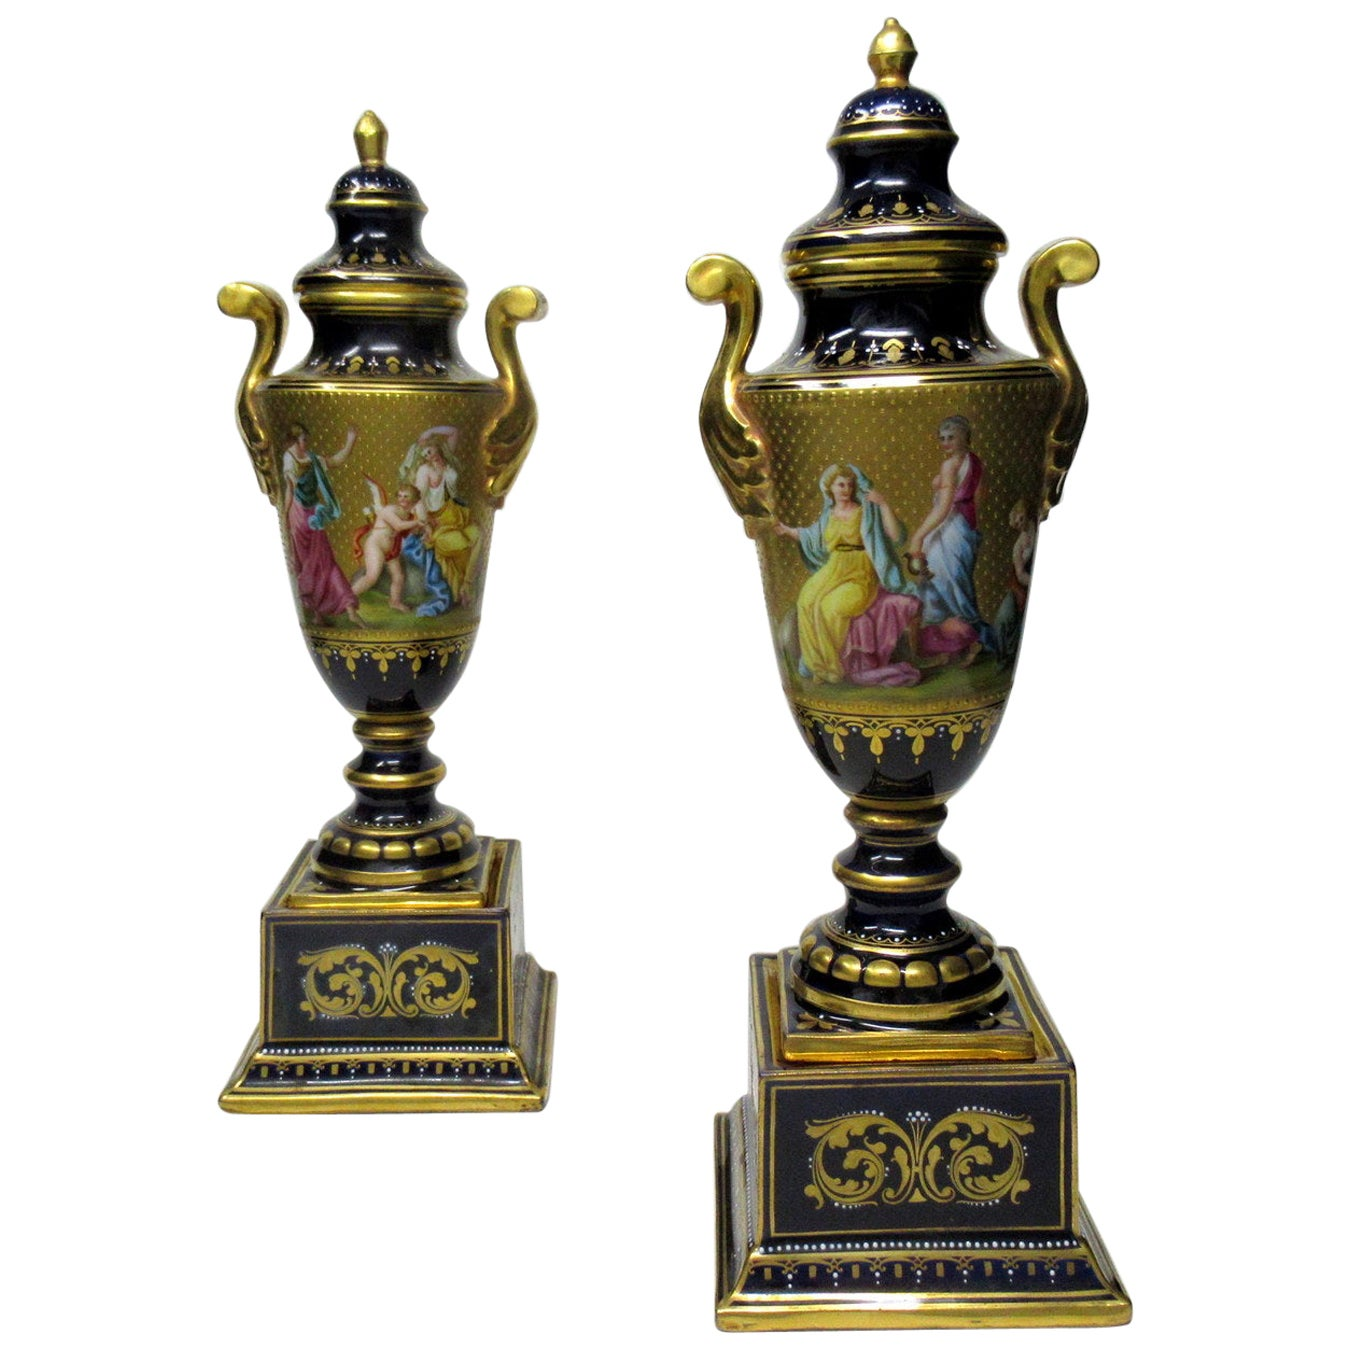 Antique Austrian Royal Vienna Mythological Themed Hand Painted Vases Urns Pair